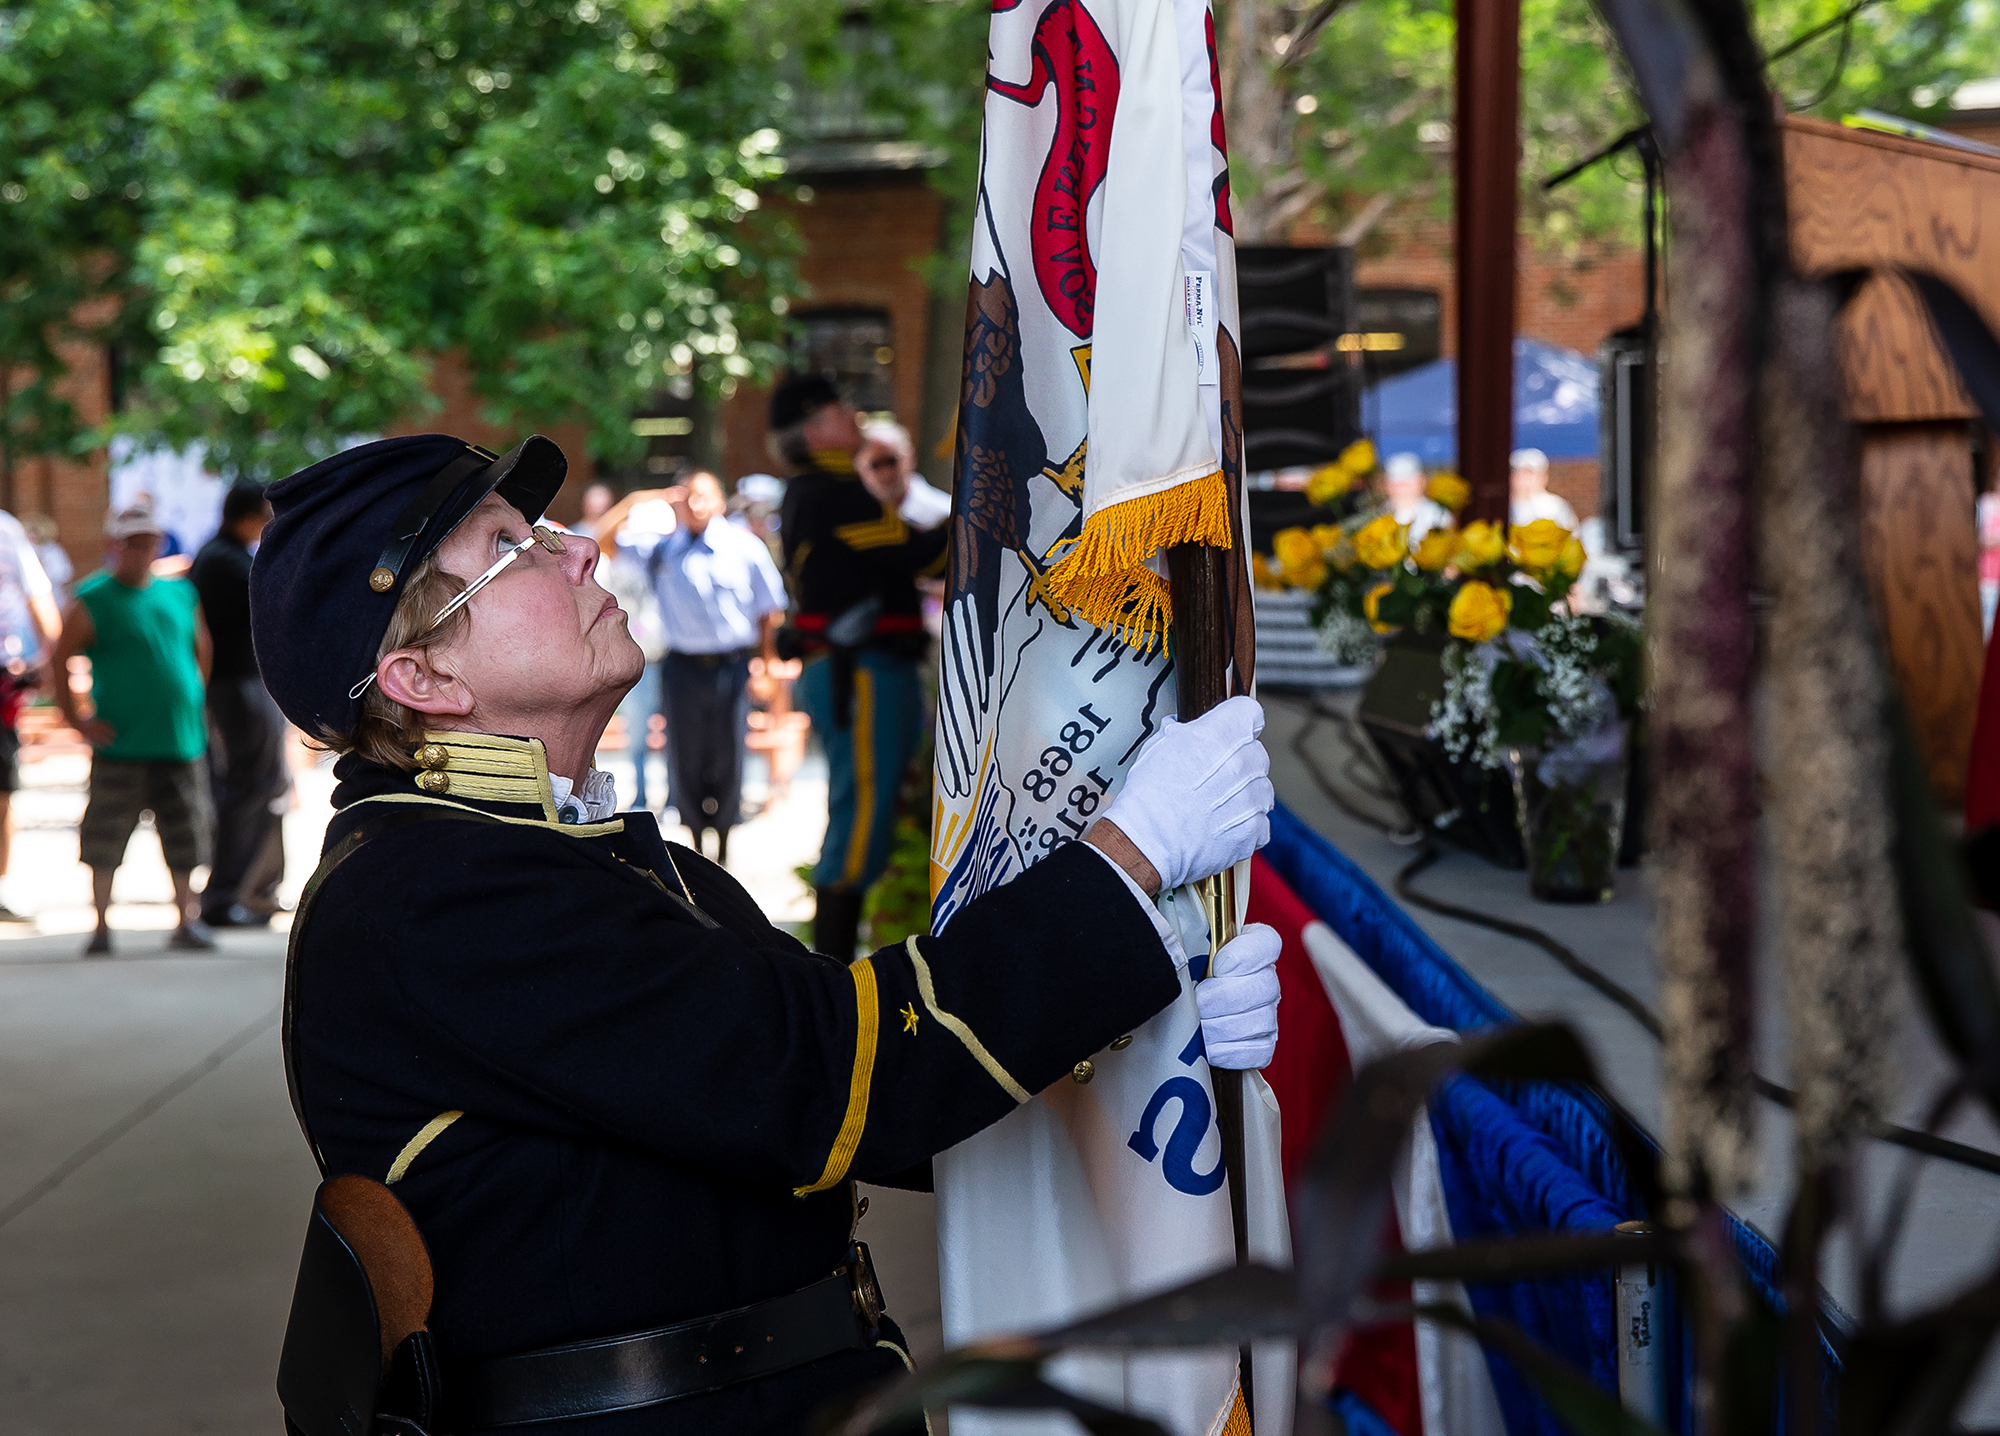 Marti Schneerman with the 10th Illinois Volunteer Calvary Regiment places the Illinois Flag during the Posting of the Colors during the Veterans Day program at the Illinois State Fair on the Lincoln Stage at the Illinois State Fairgrounds, Sunday, Aug. 12, 2018, in Springfield, Ill. [Justin L. Fowler/The State Journal-Register]